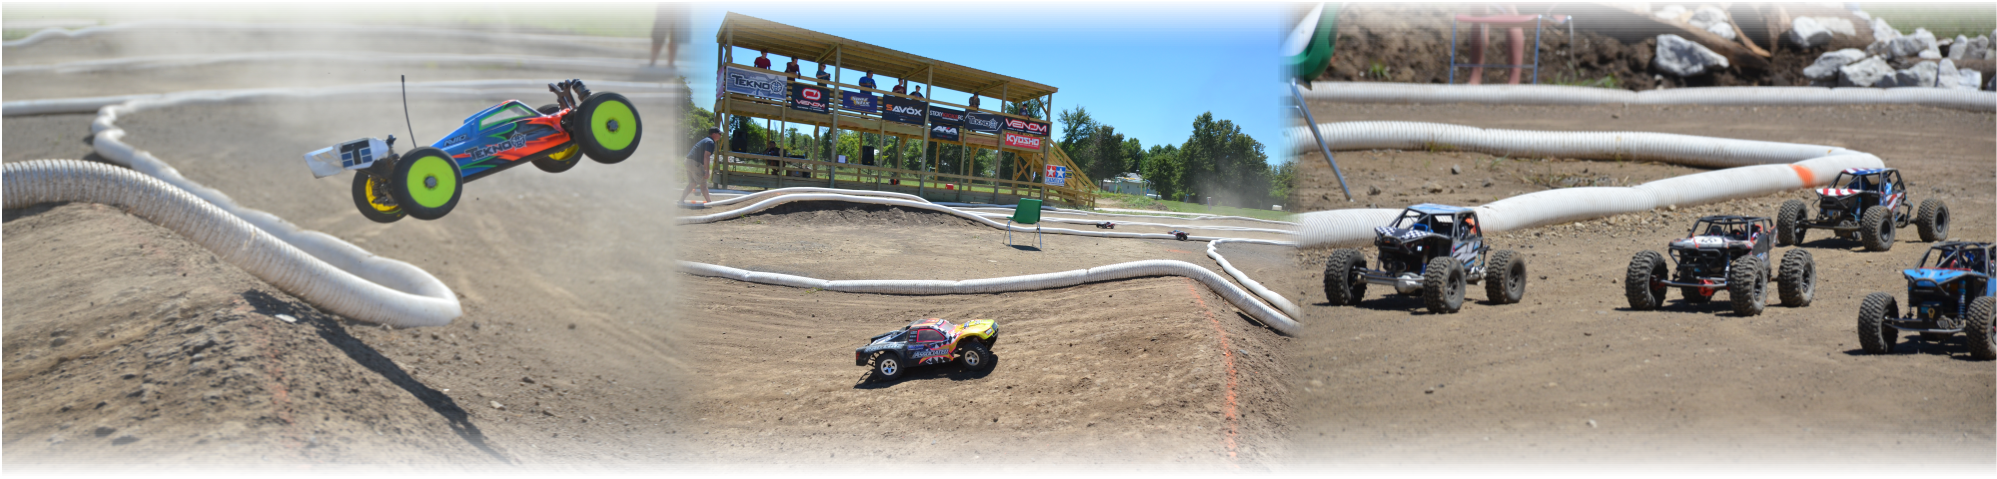 Falcon Roost Raceway - Midwest's Largest RC Playground - Falcon